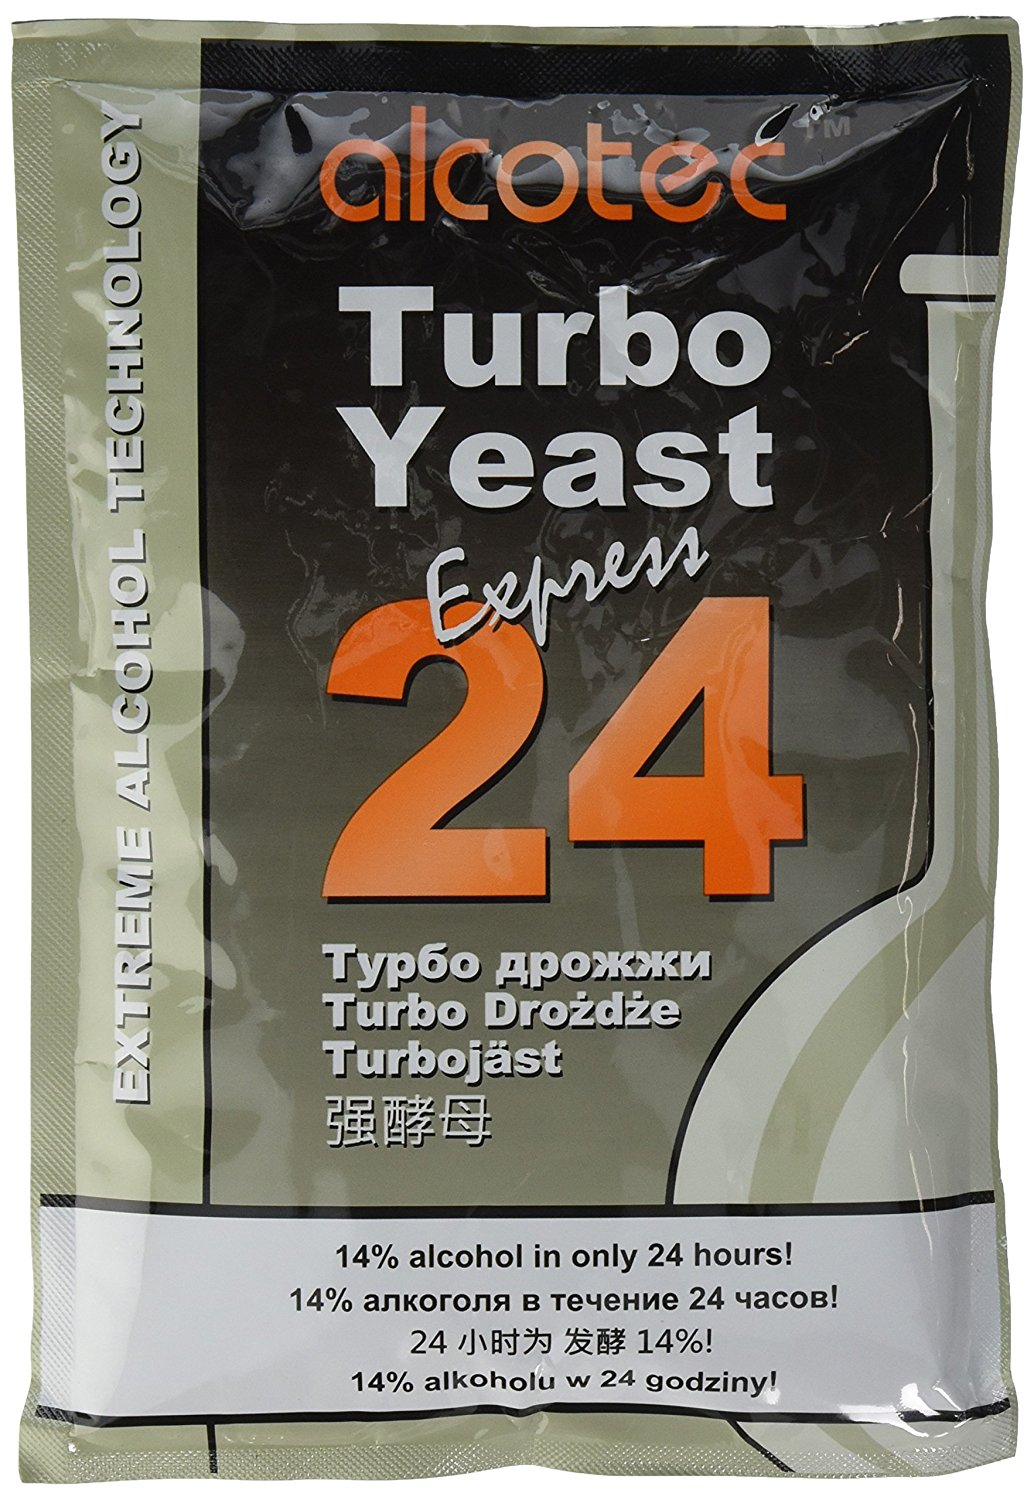 205g 24-hour Turbo Yeast, Gold, Alcotec 24-hour Turbo yeast By Alcotec Ship from US by